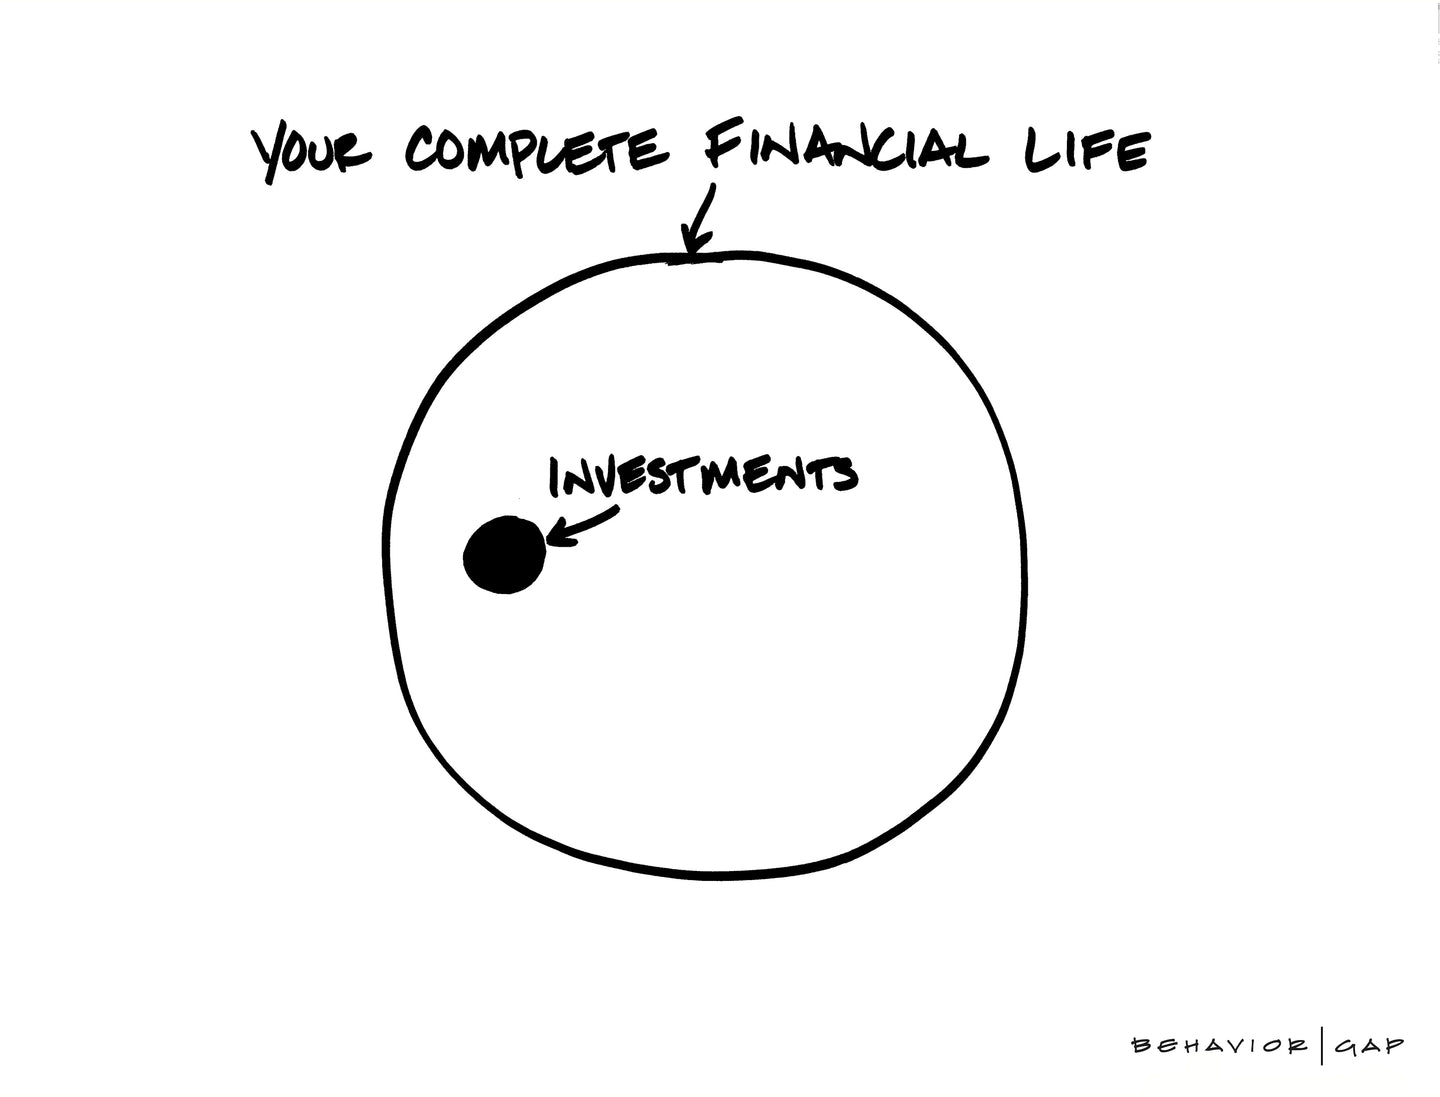 Your Complete Financial Life